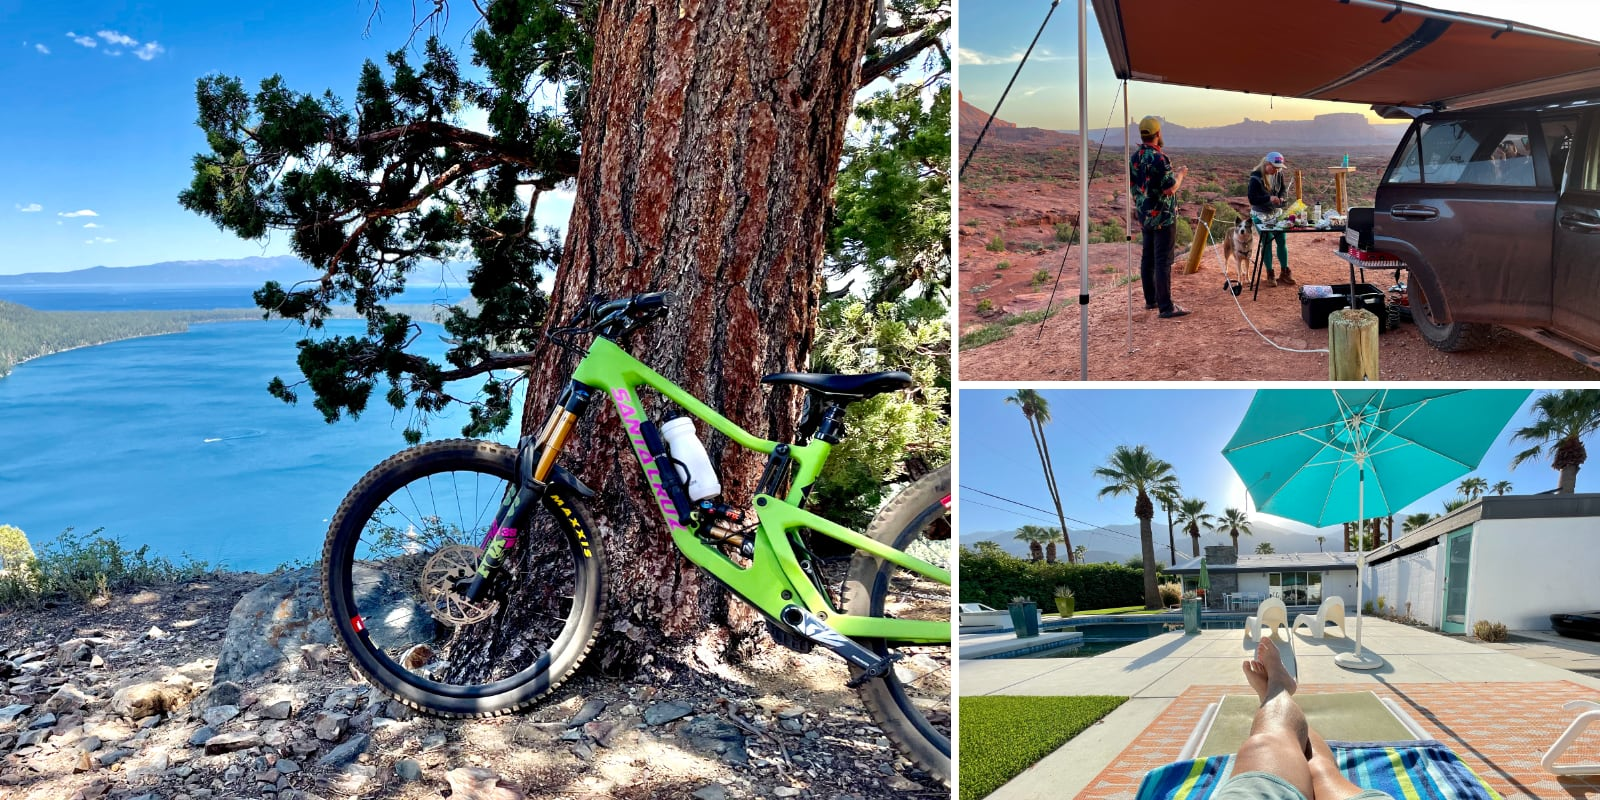 Mountain bike on Lily Lake, camping with the 4runner, and relaxing in Palm Springs